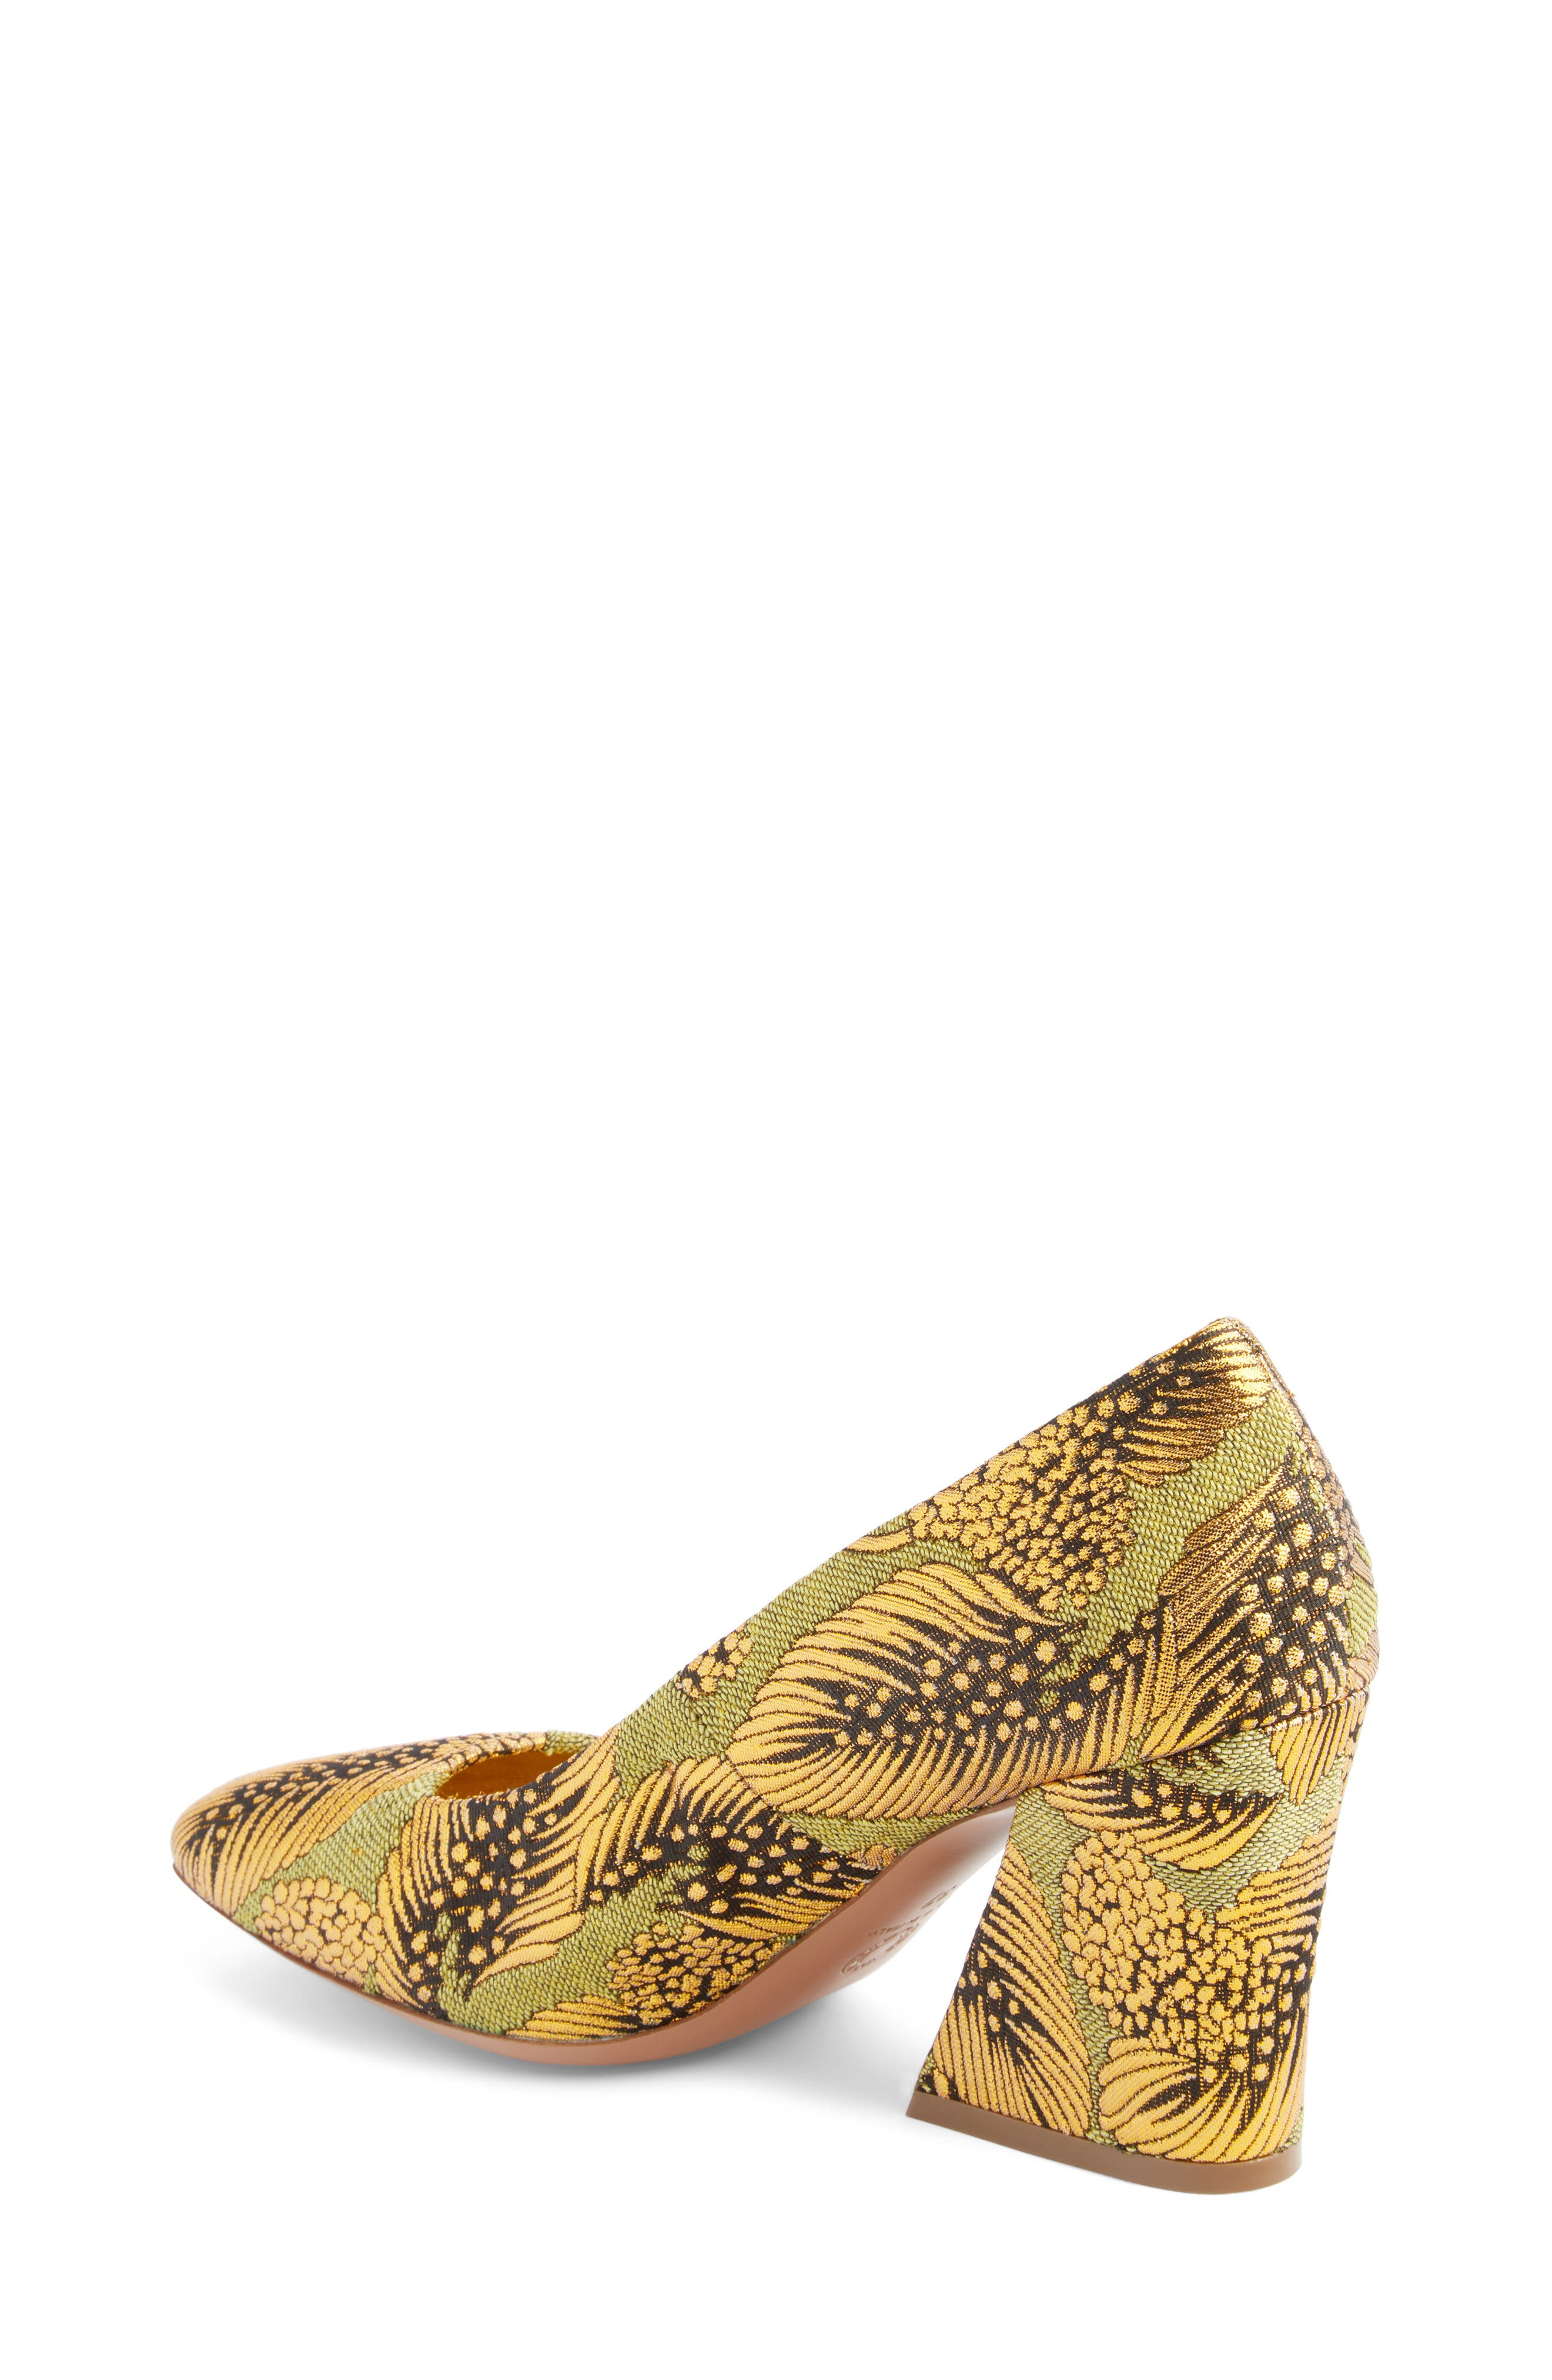 Leaf Print Angle Heel Pump,                             Alternate thumbnail 2, color,                             710